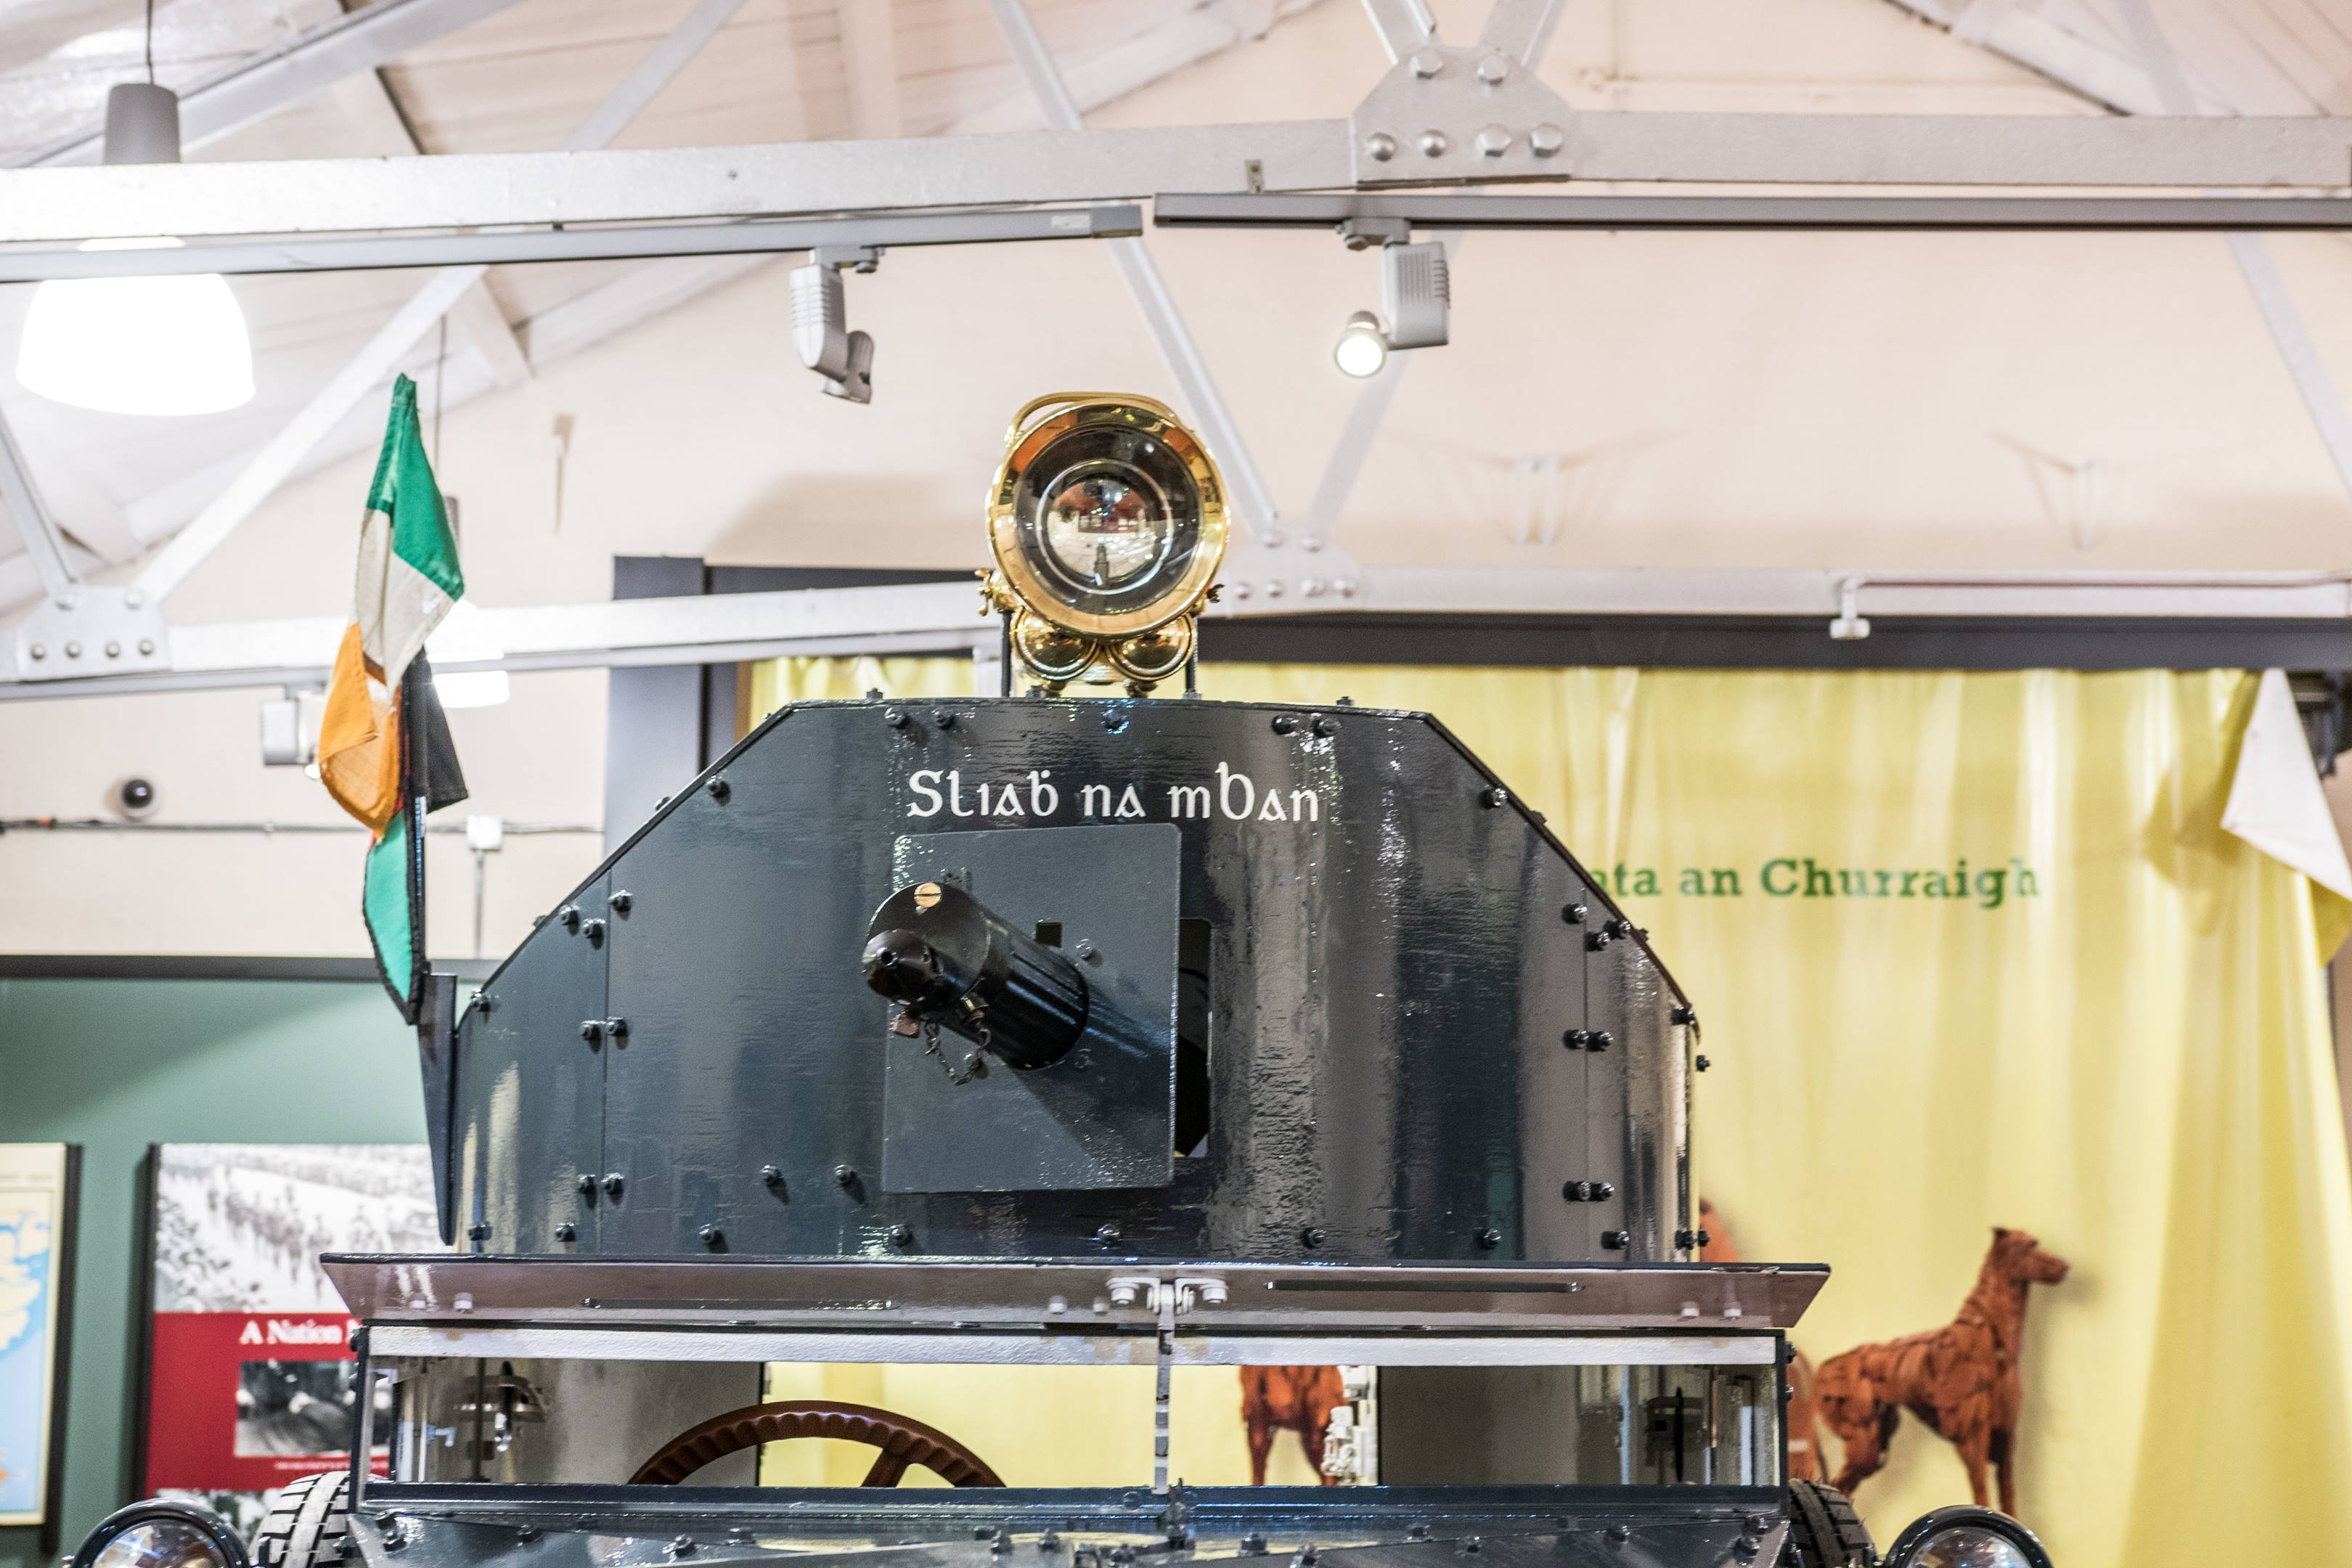 Sliabh no mBan sits in pride of place at the Curragh Museum